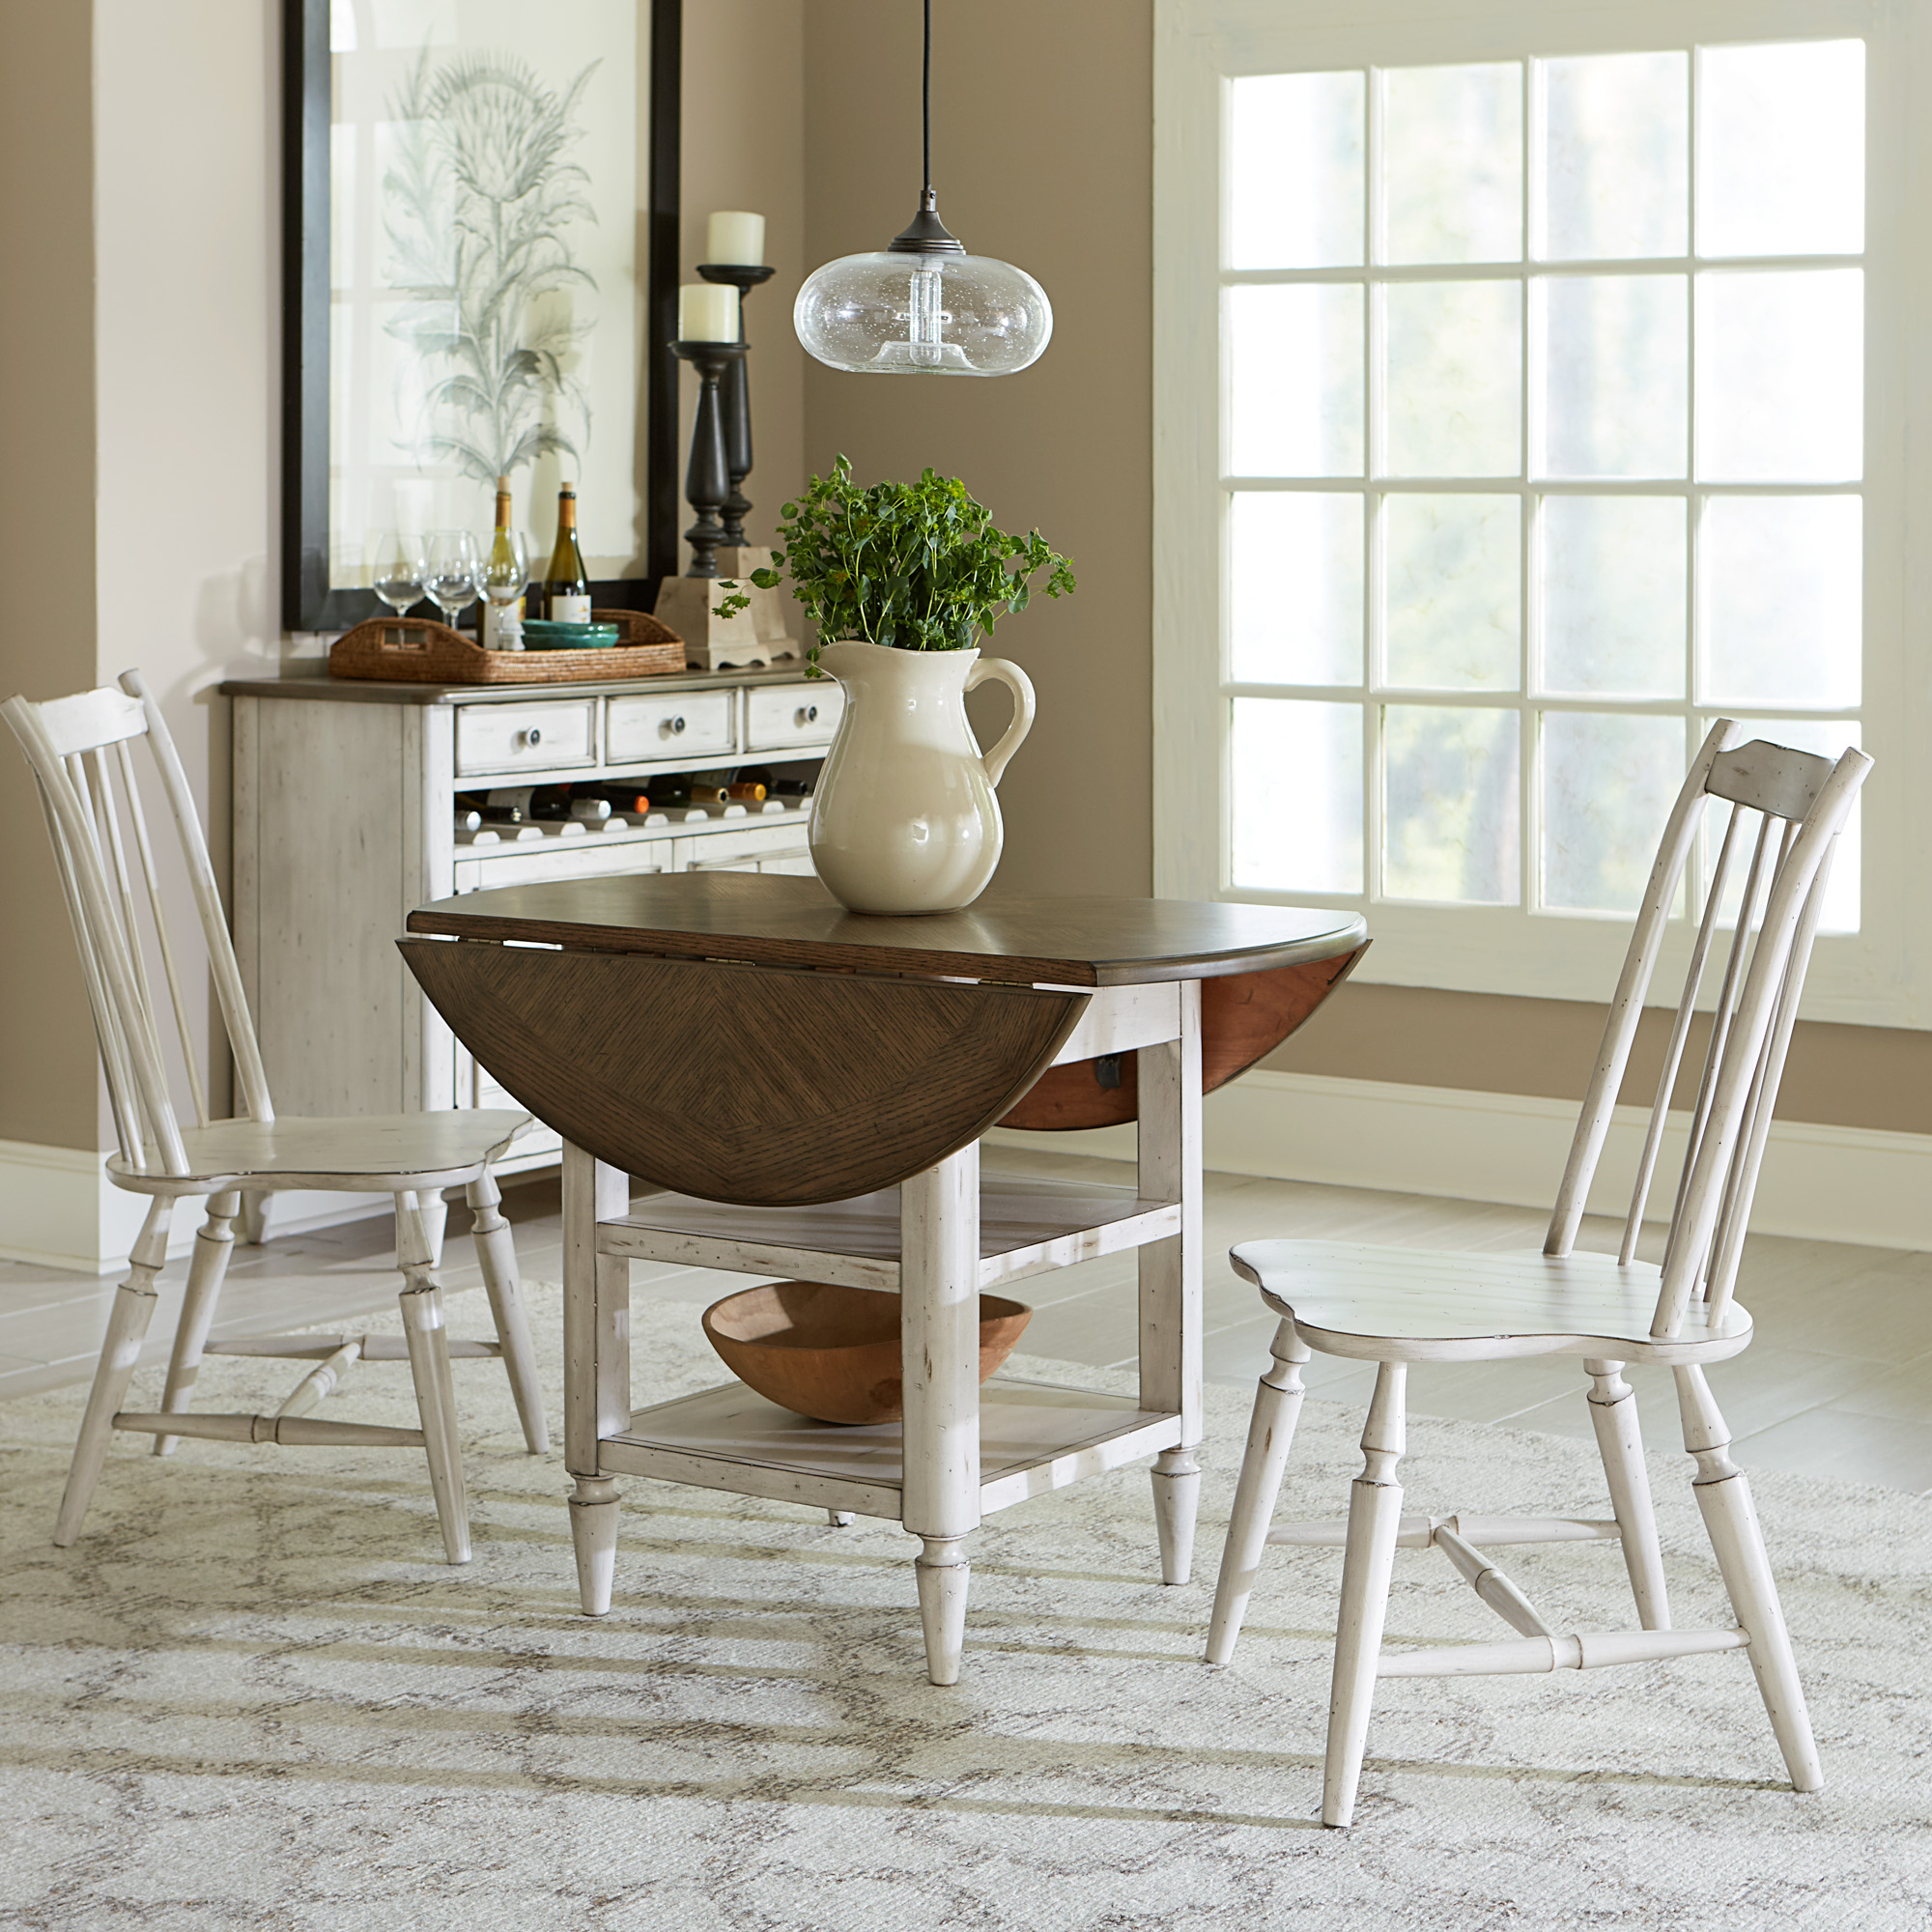 Dining Room Sets, Dining Room Furniture | Liberty Furniture Intended For Most Popular Springfield 3 Piece Dining Sets (Photo 4 of 20)